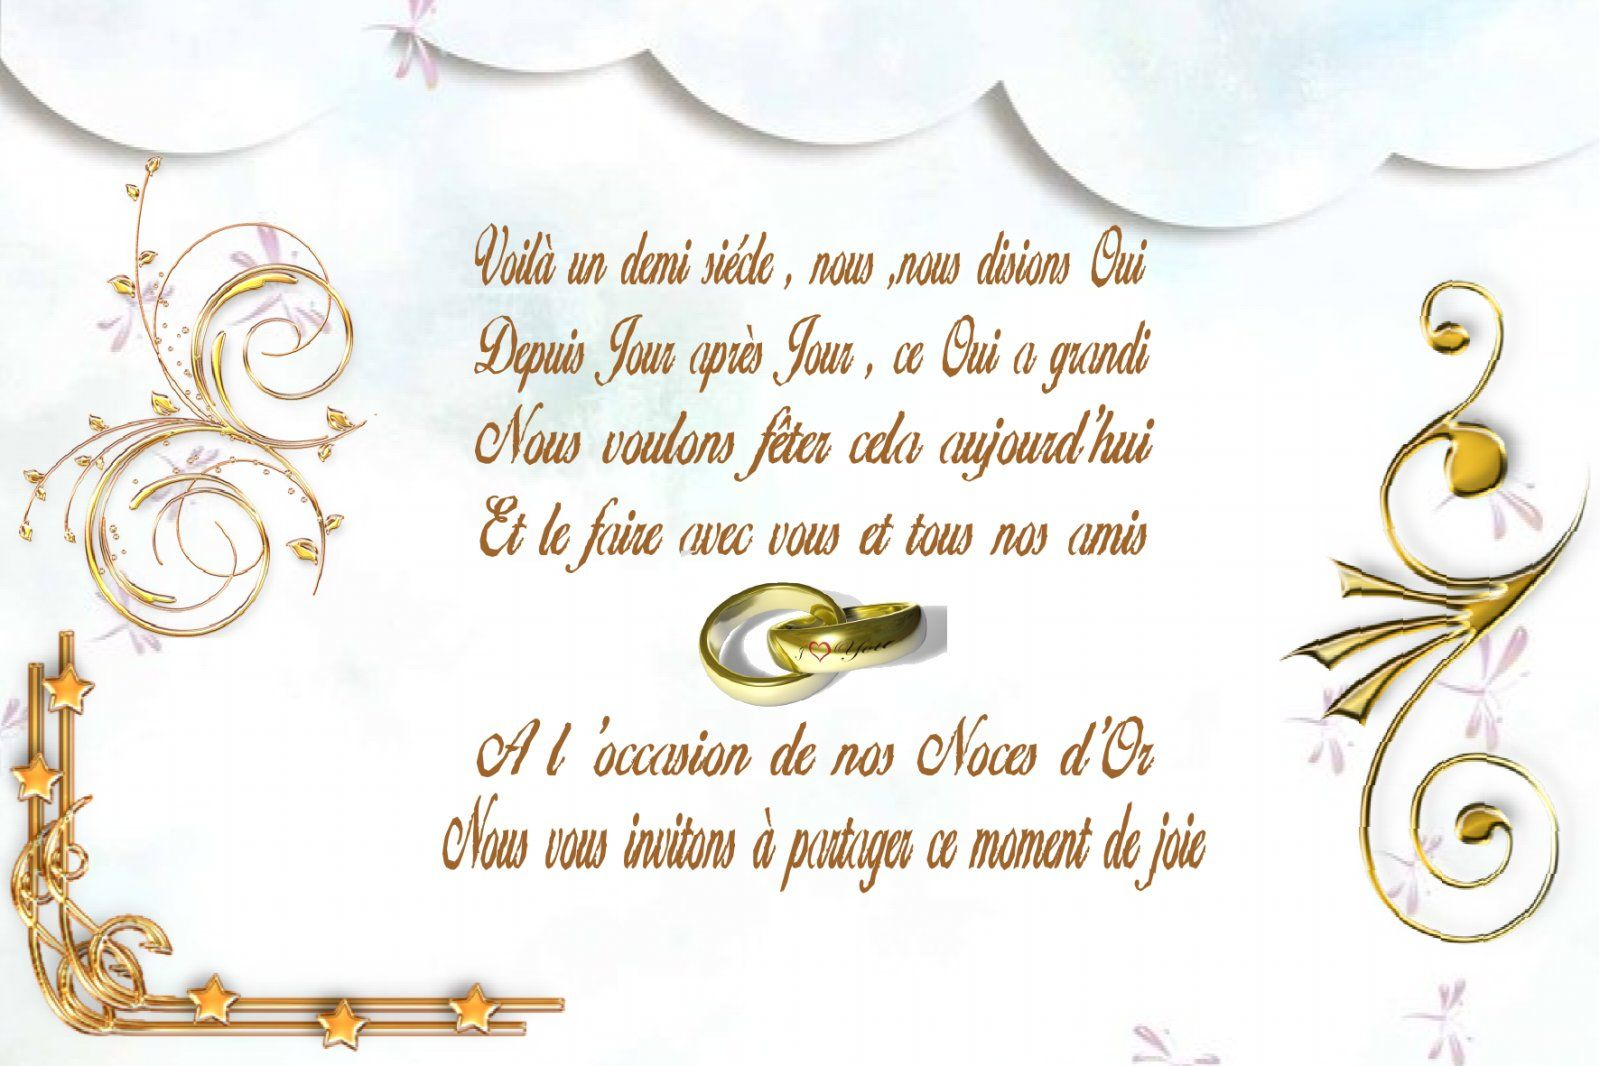 1000 images about noces dor on pinterest cards mariage and vintage - Texte Invitation 50 Ans De Mariage Noces D Or